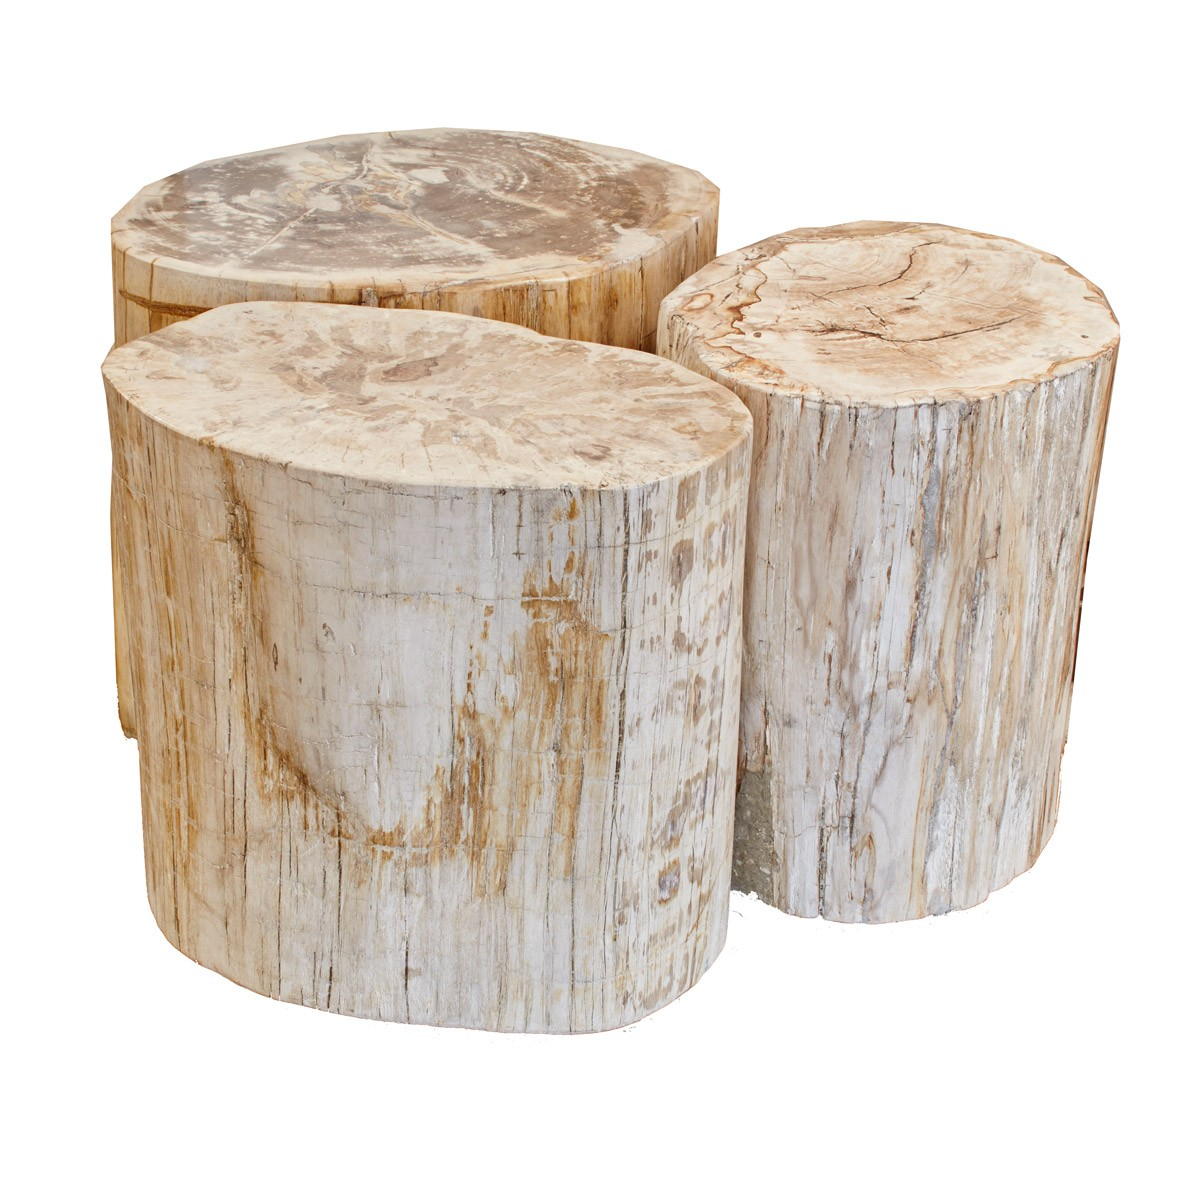 Prime Blond Petrified Wood Stool Full Polish Petrified Stool Gmtry Best Dining Table And Chair Ideas Images Gmtryco